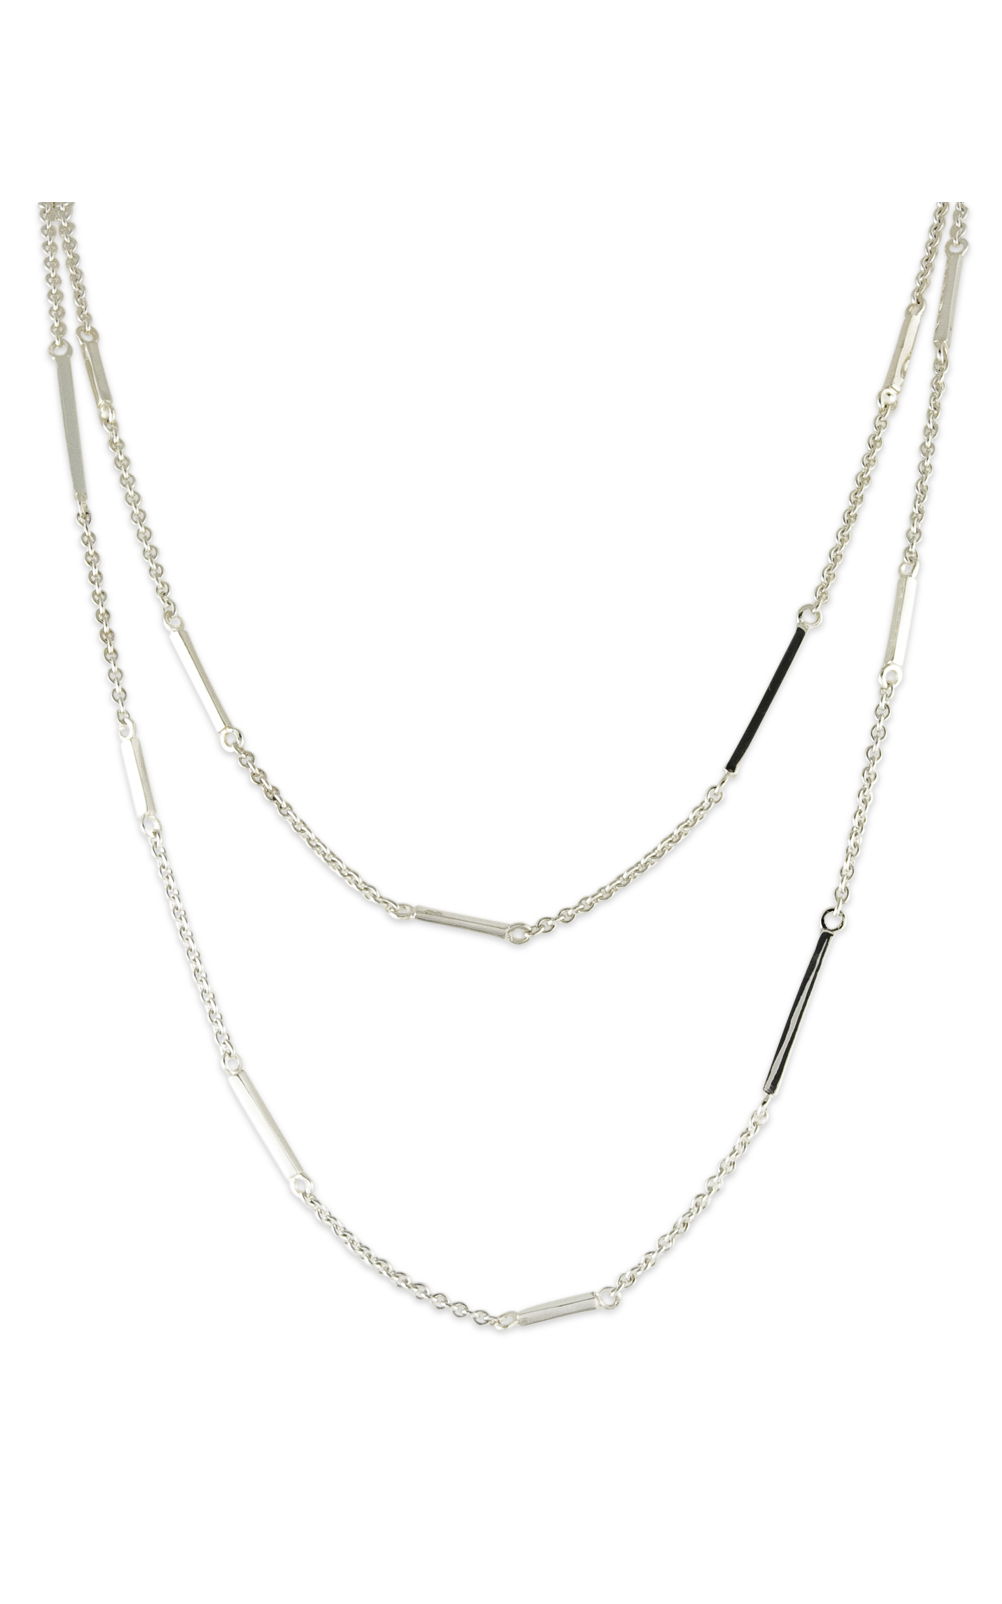 Zina Contemporary Necklace A296-36 product image